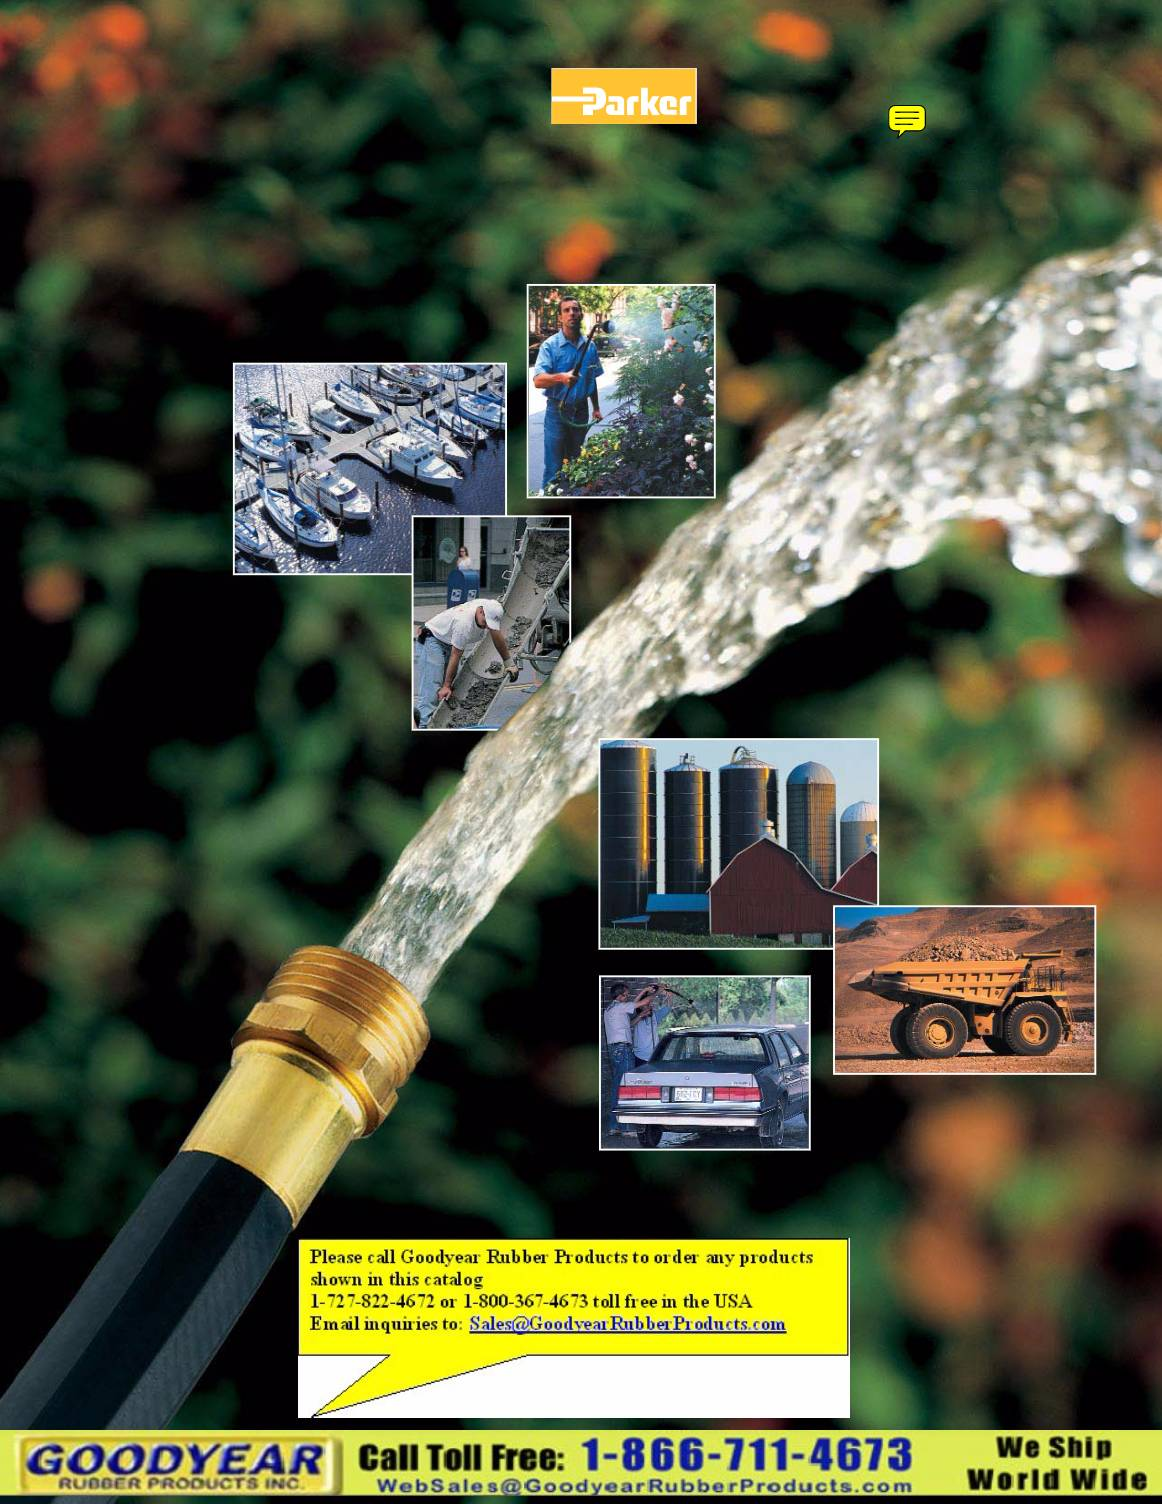 Parker Water Hose Products